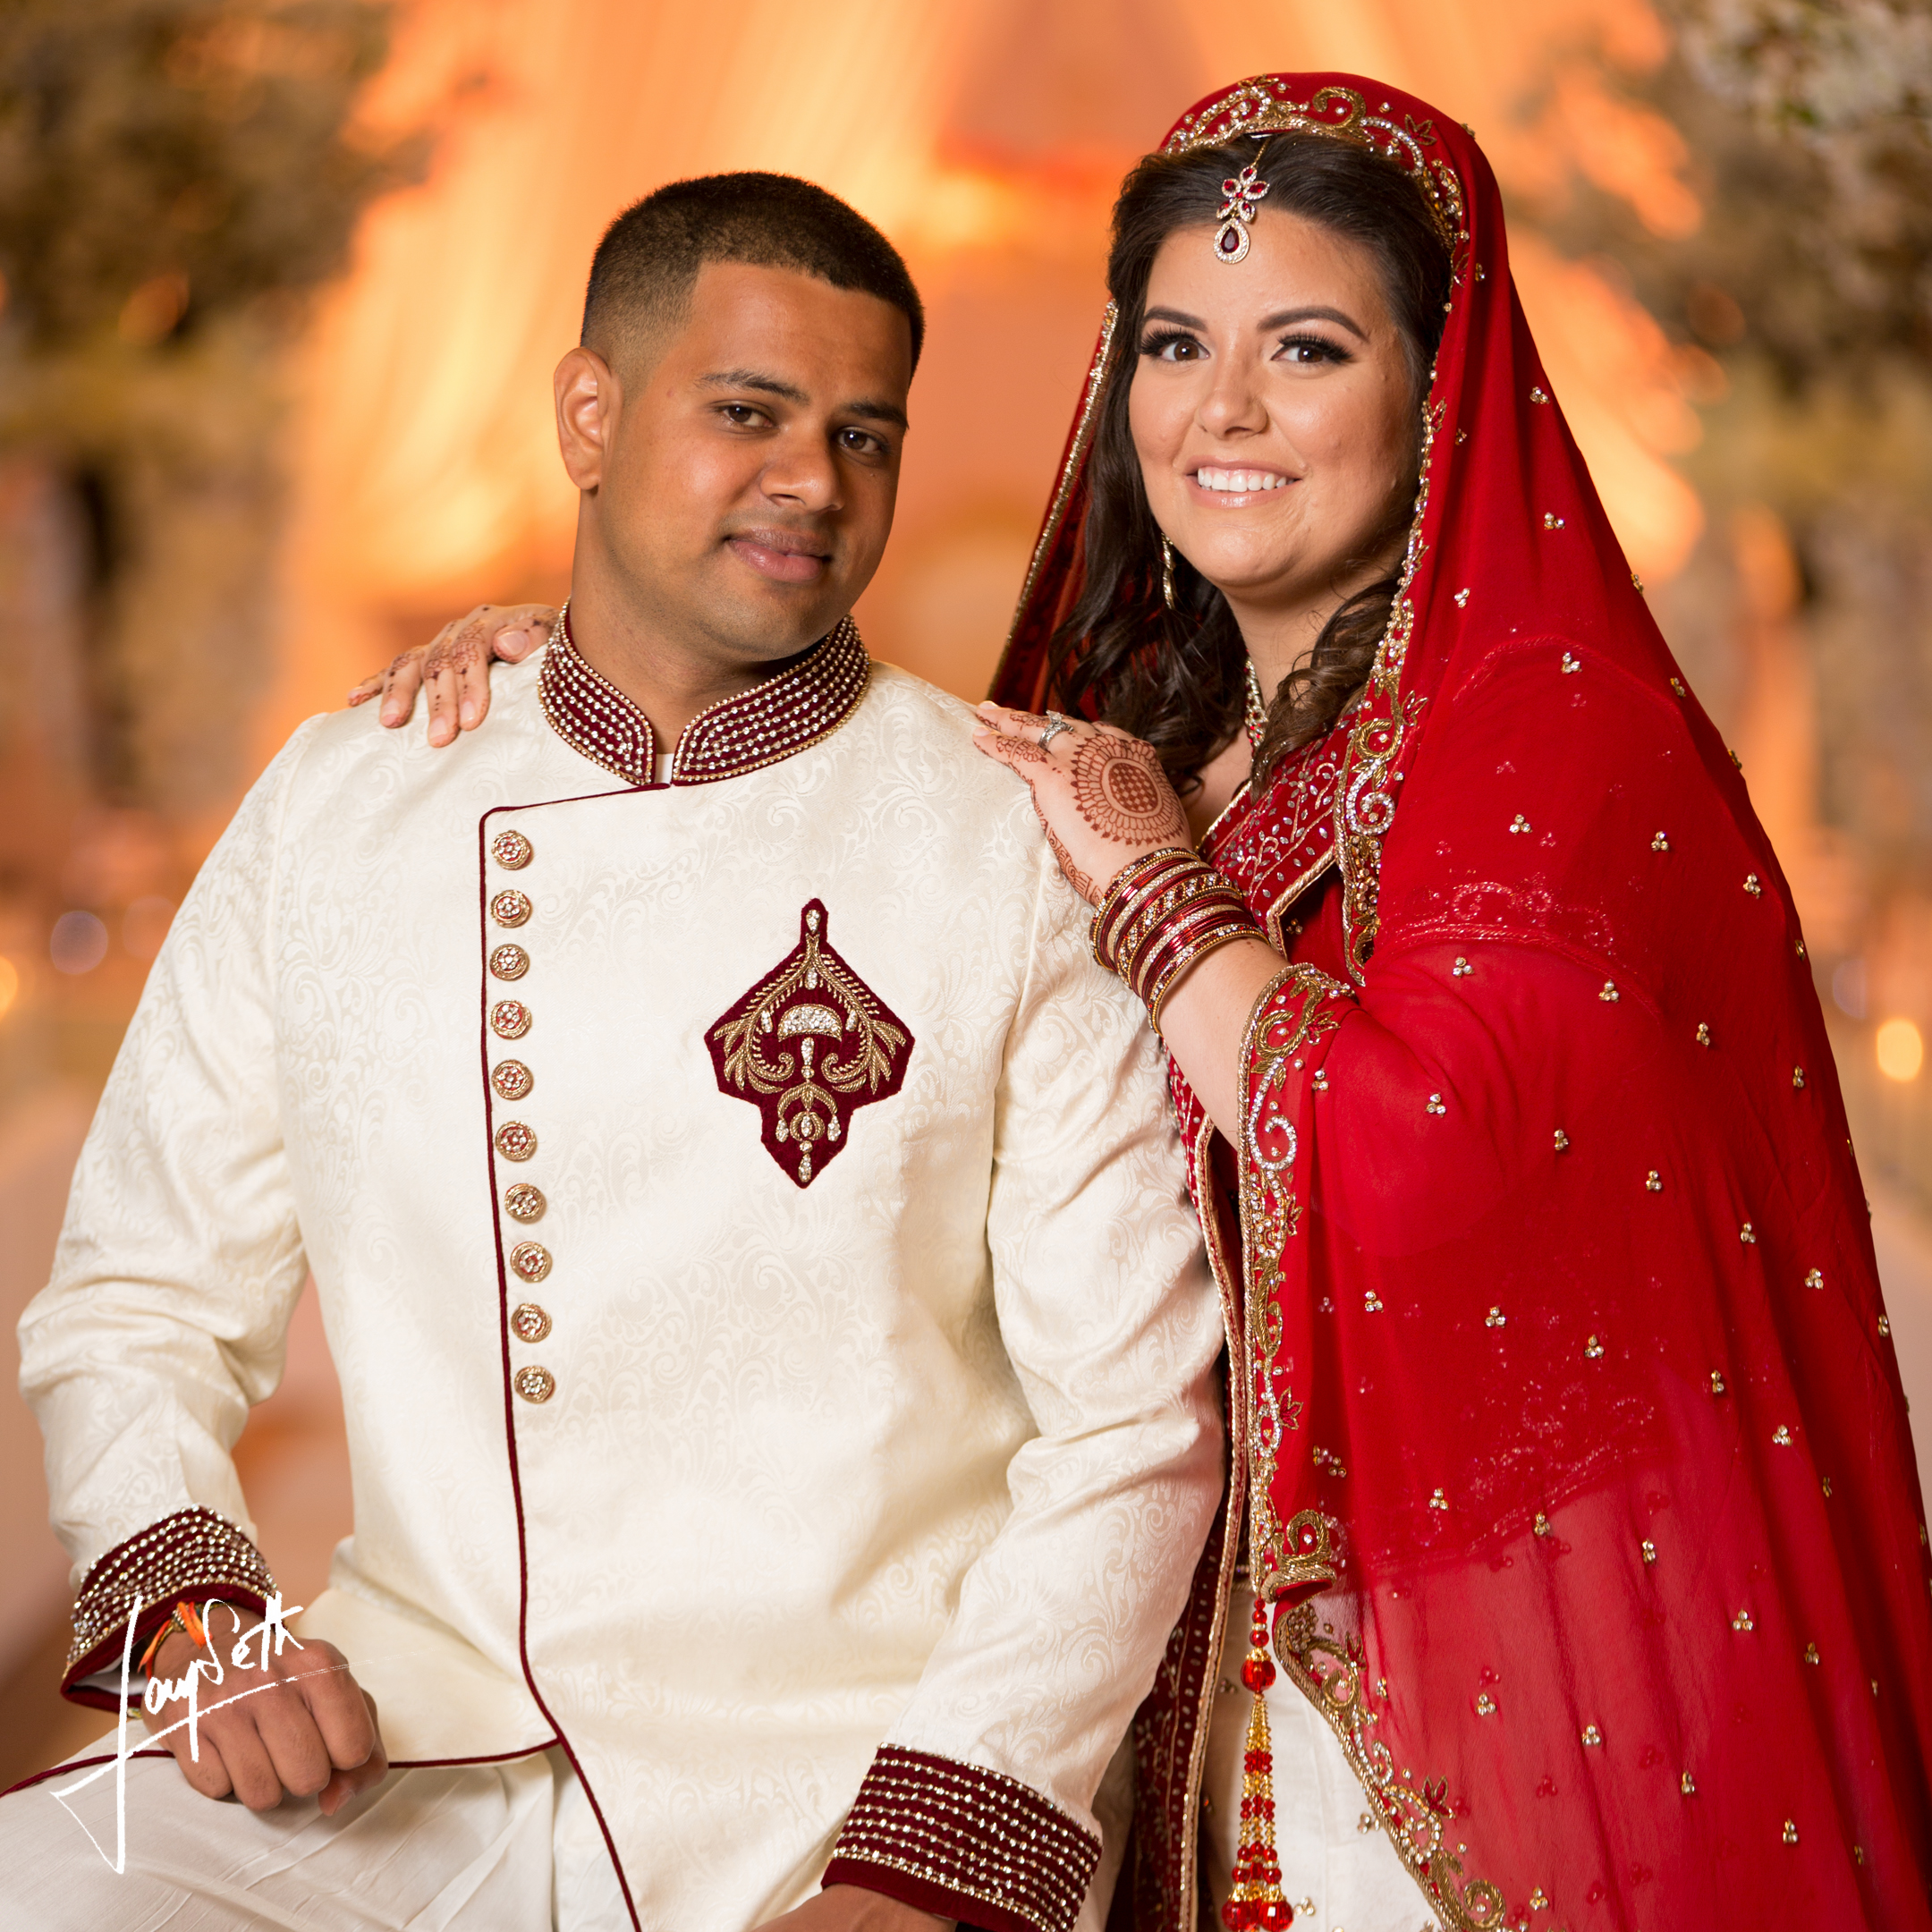 PRETTY INDIAN COUPLE